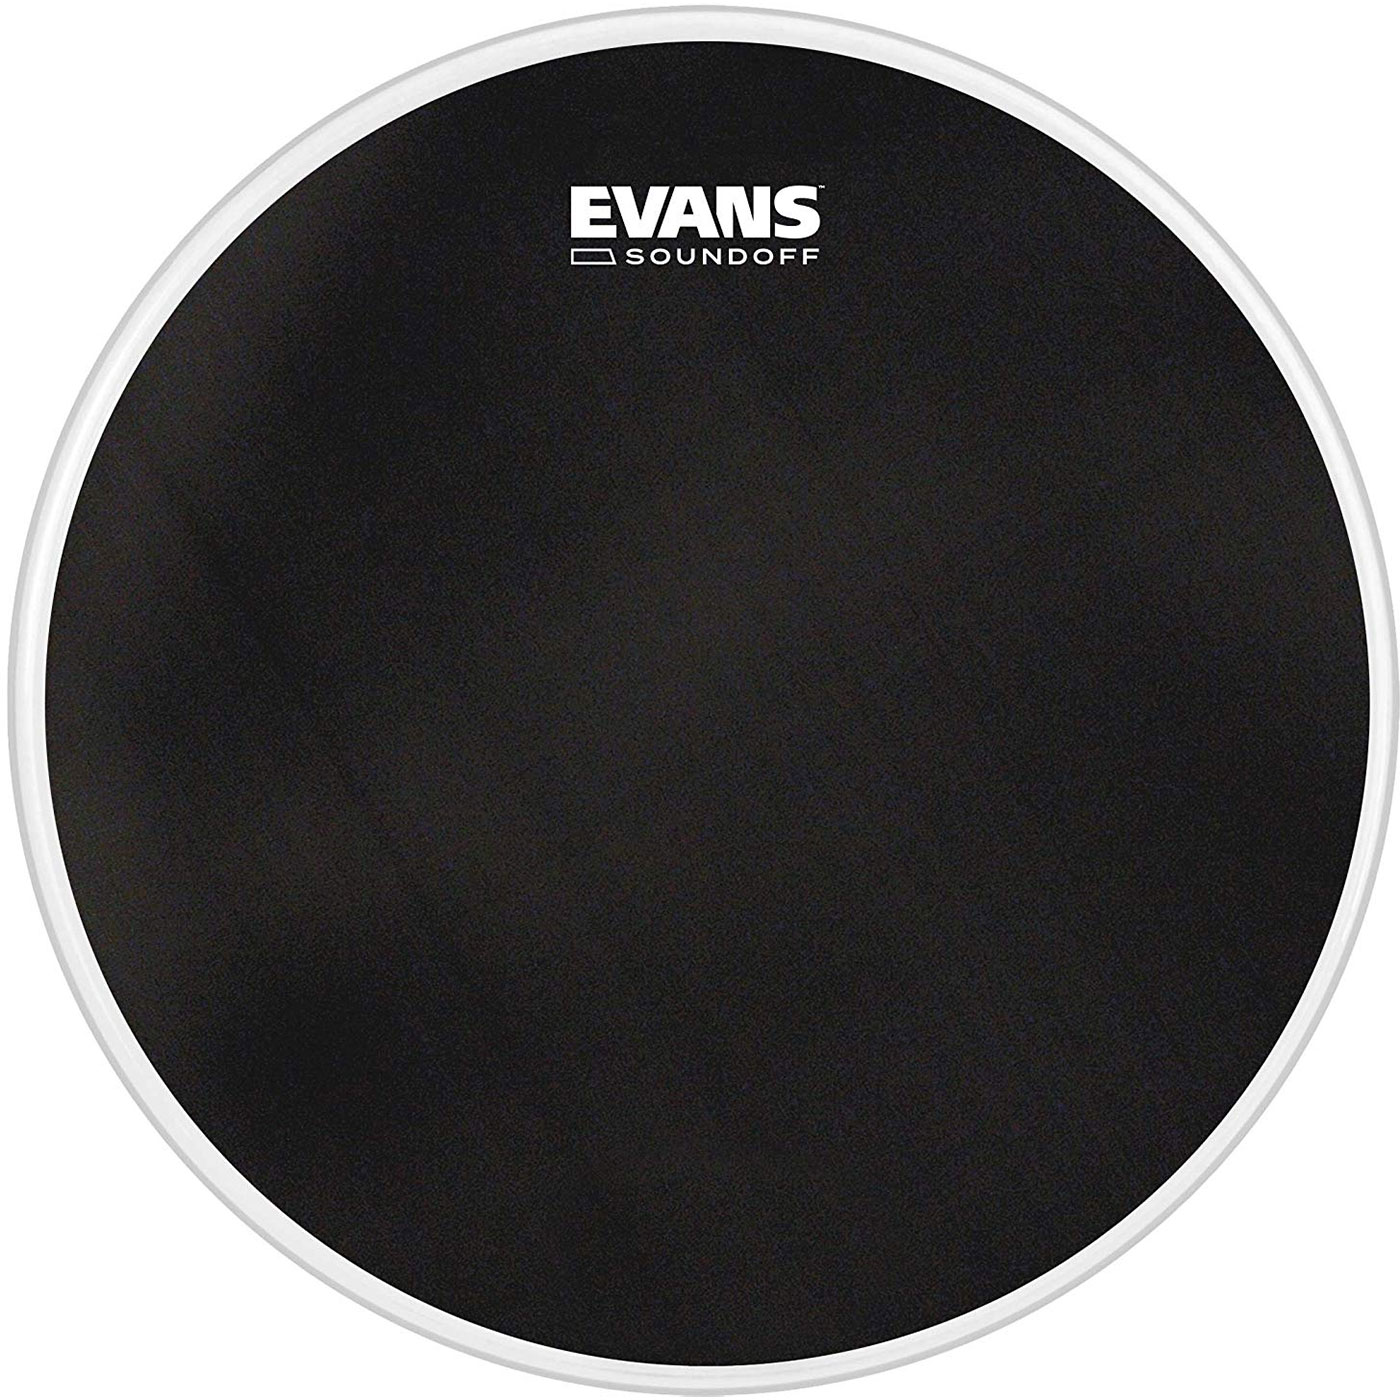 "Evans 24"" SoundOff Mesh Bass Drum Head"